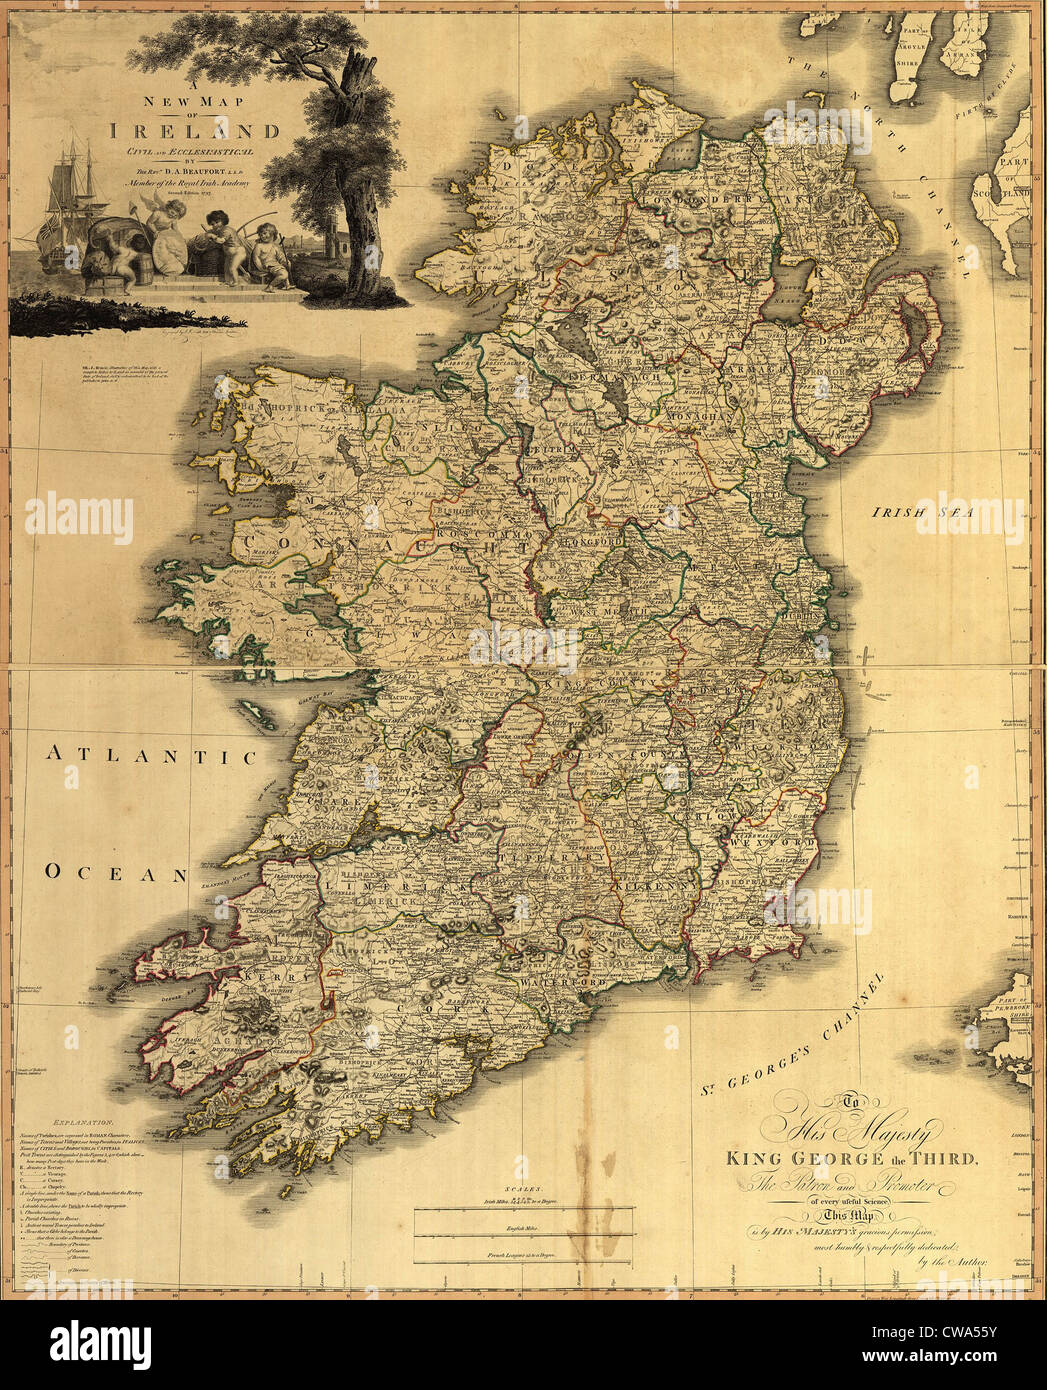 Map of Ireland from 18th century, showing counties, when all of Ireland was under British rule. 1797 - Stock Image